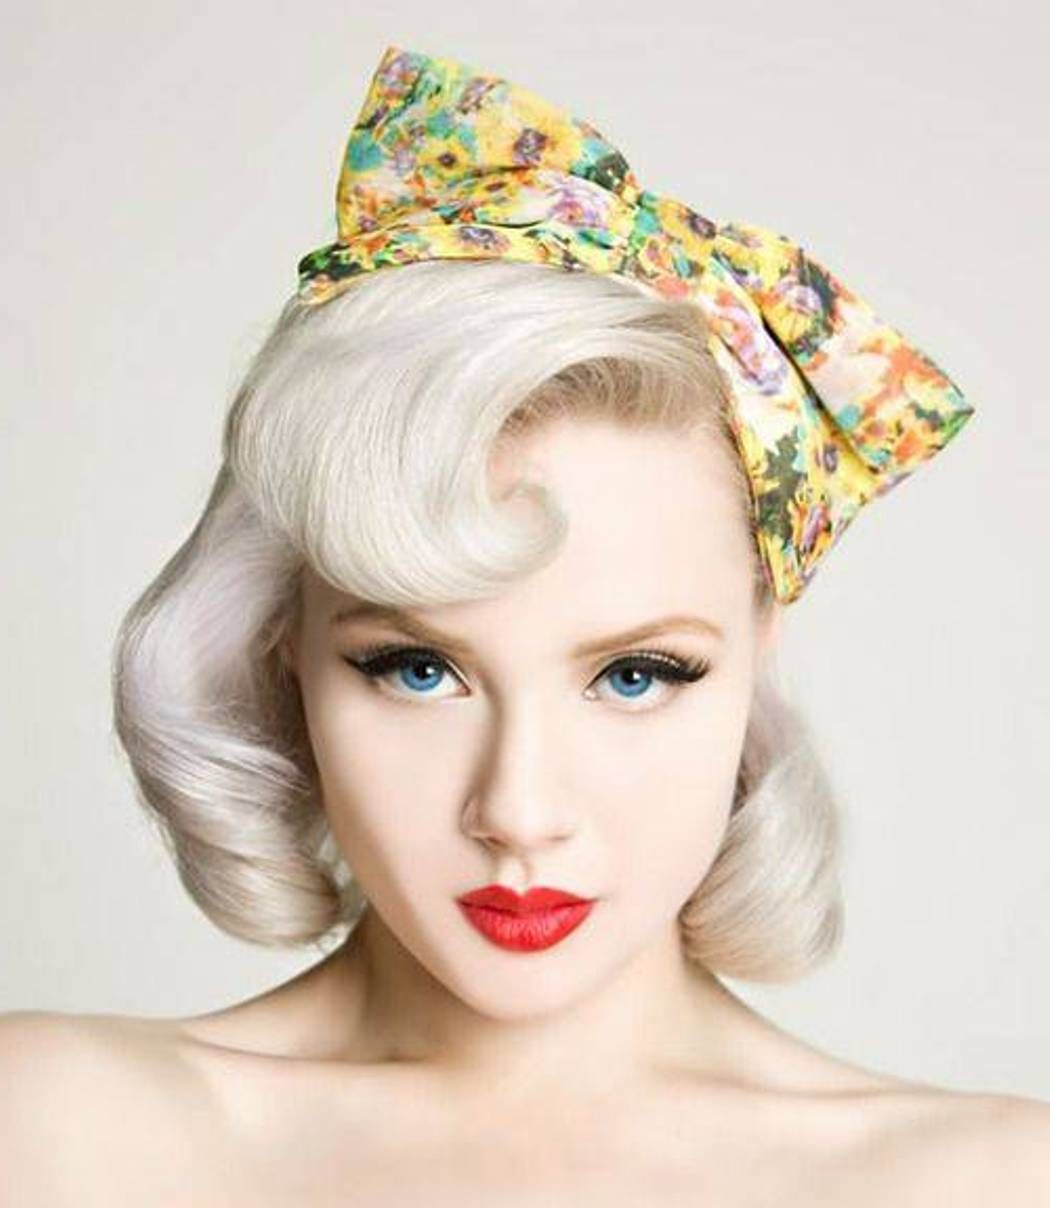 Wondrous 1000 Images About Rockabilly Pin Up On Pinterest Pin Up Short Hairstyles Gunalazisus